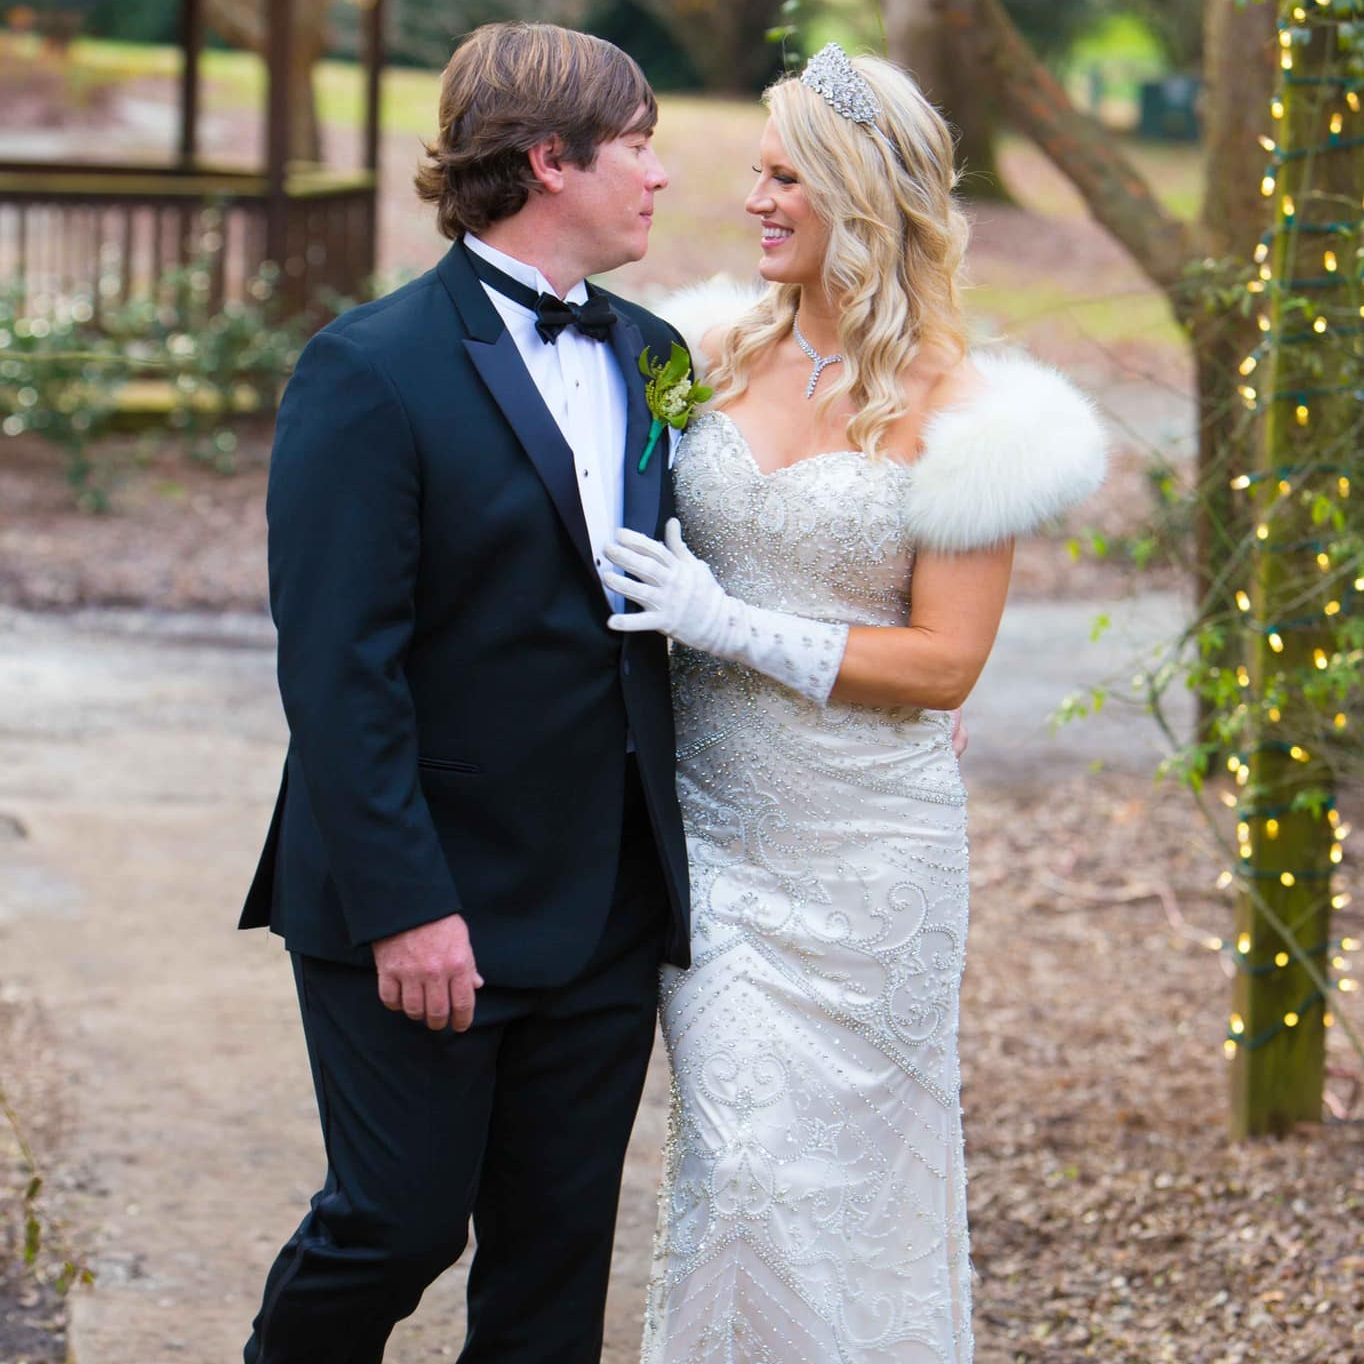 Lahcen Boufedji Photography   Planner:  Blush Pink Weddings  Venue & Catering:  Barnsley Resort